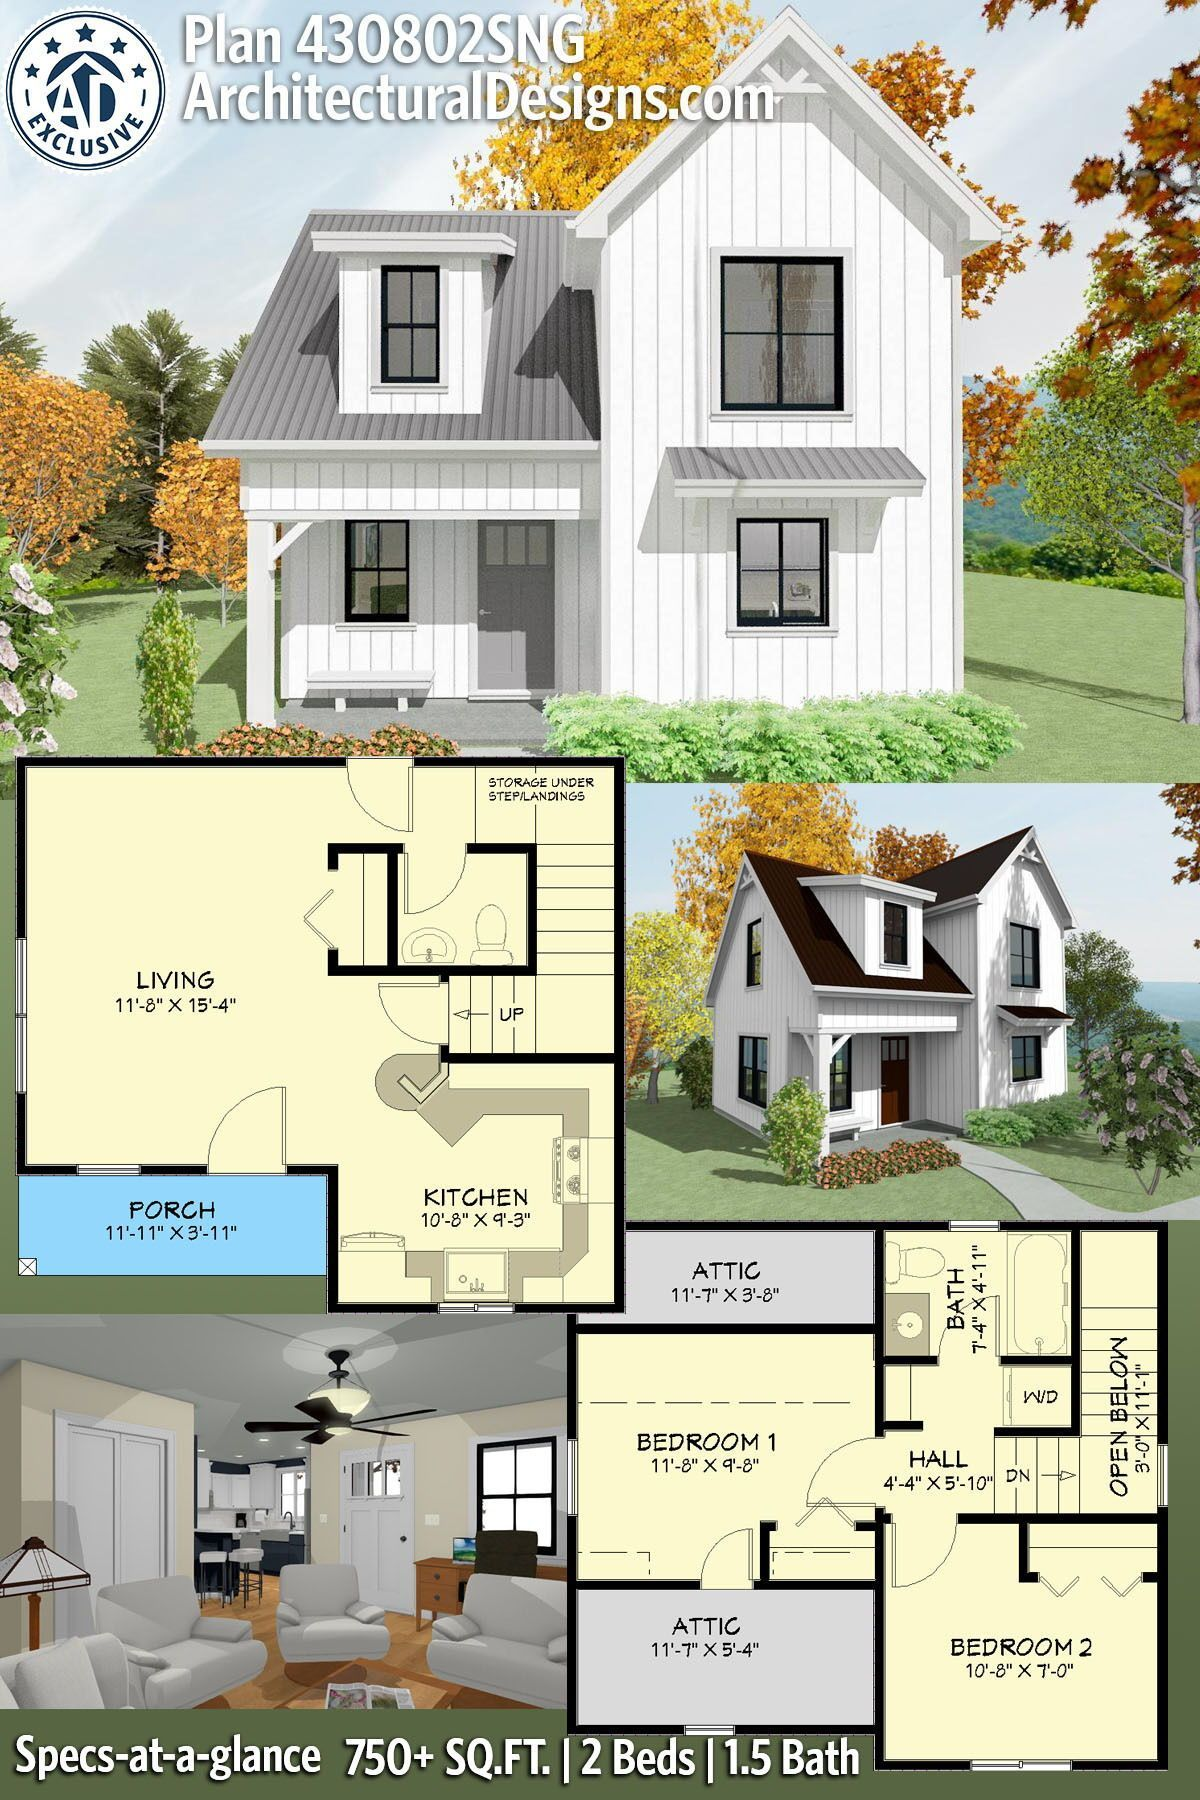 Plan 430802sng Exclusive Two Story House Plan With Upstairs Bedrooms Cottage Floor Plans Tiny House Exterior Two Story House Plans